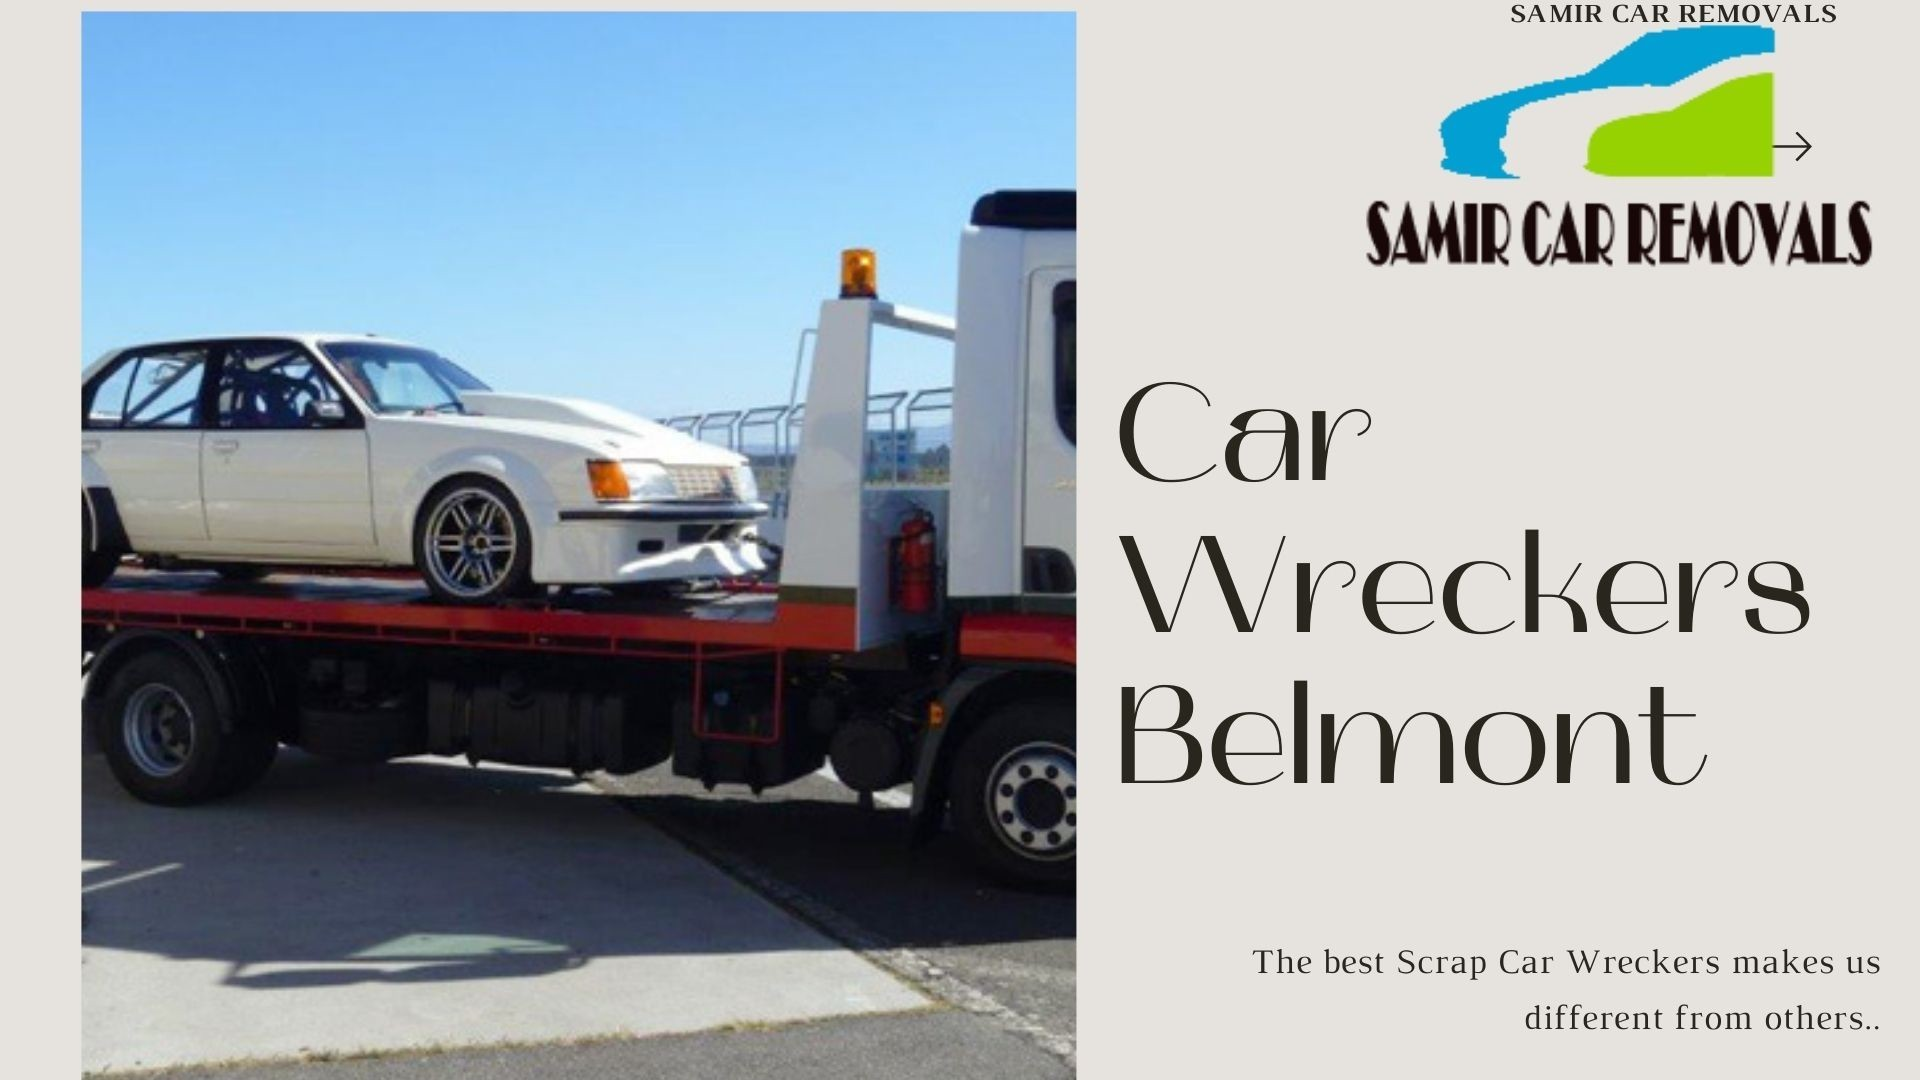 Car Wreckers Belmont: Profitable alternative than taking your car to the Junkyard